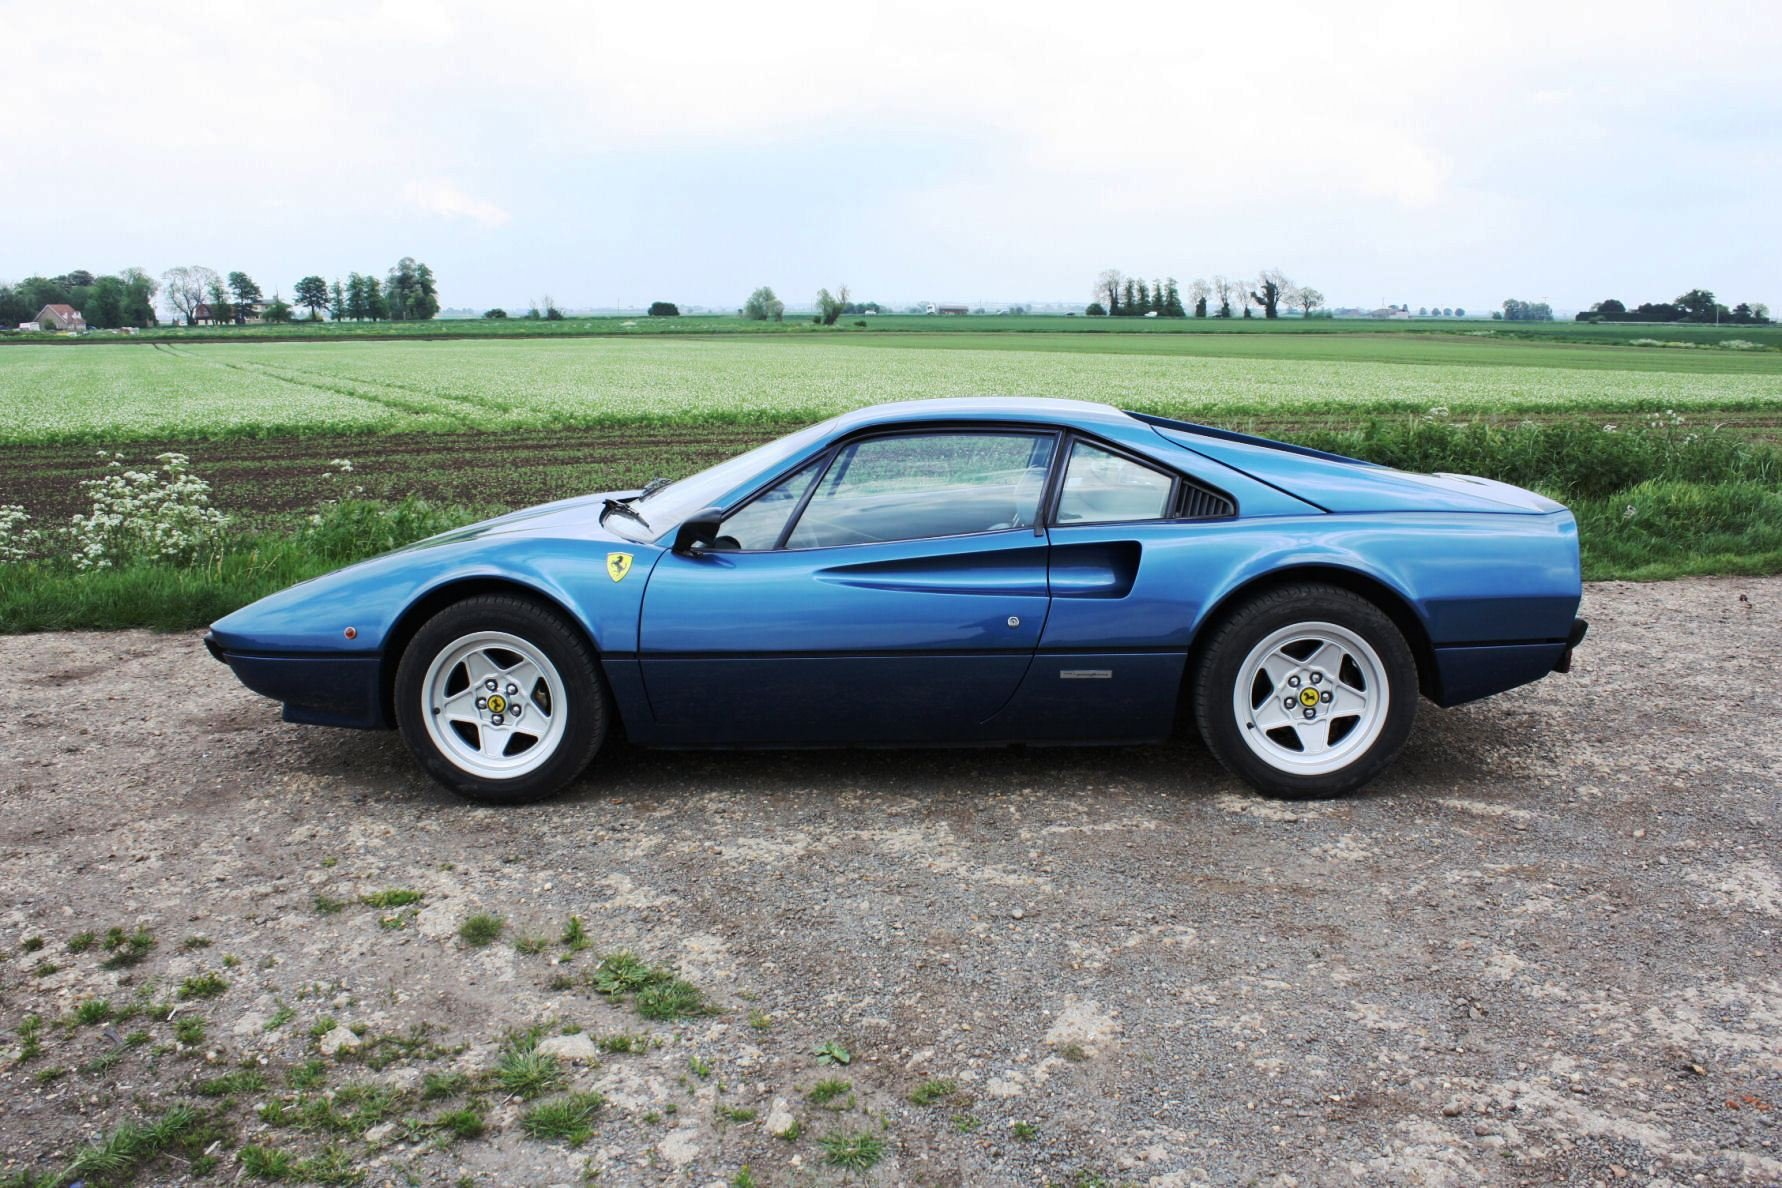 FERRARI 308 GTBi 1981. EXCELLENT CONDITION THROUGHOUT For Sale (picture 5 of 6)